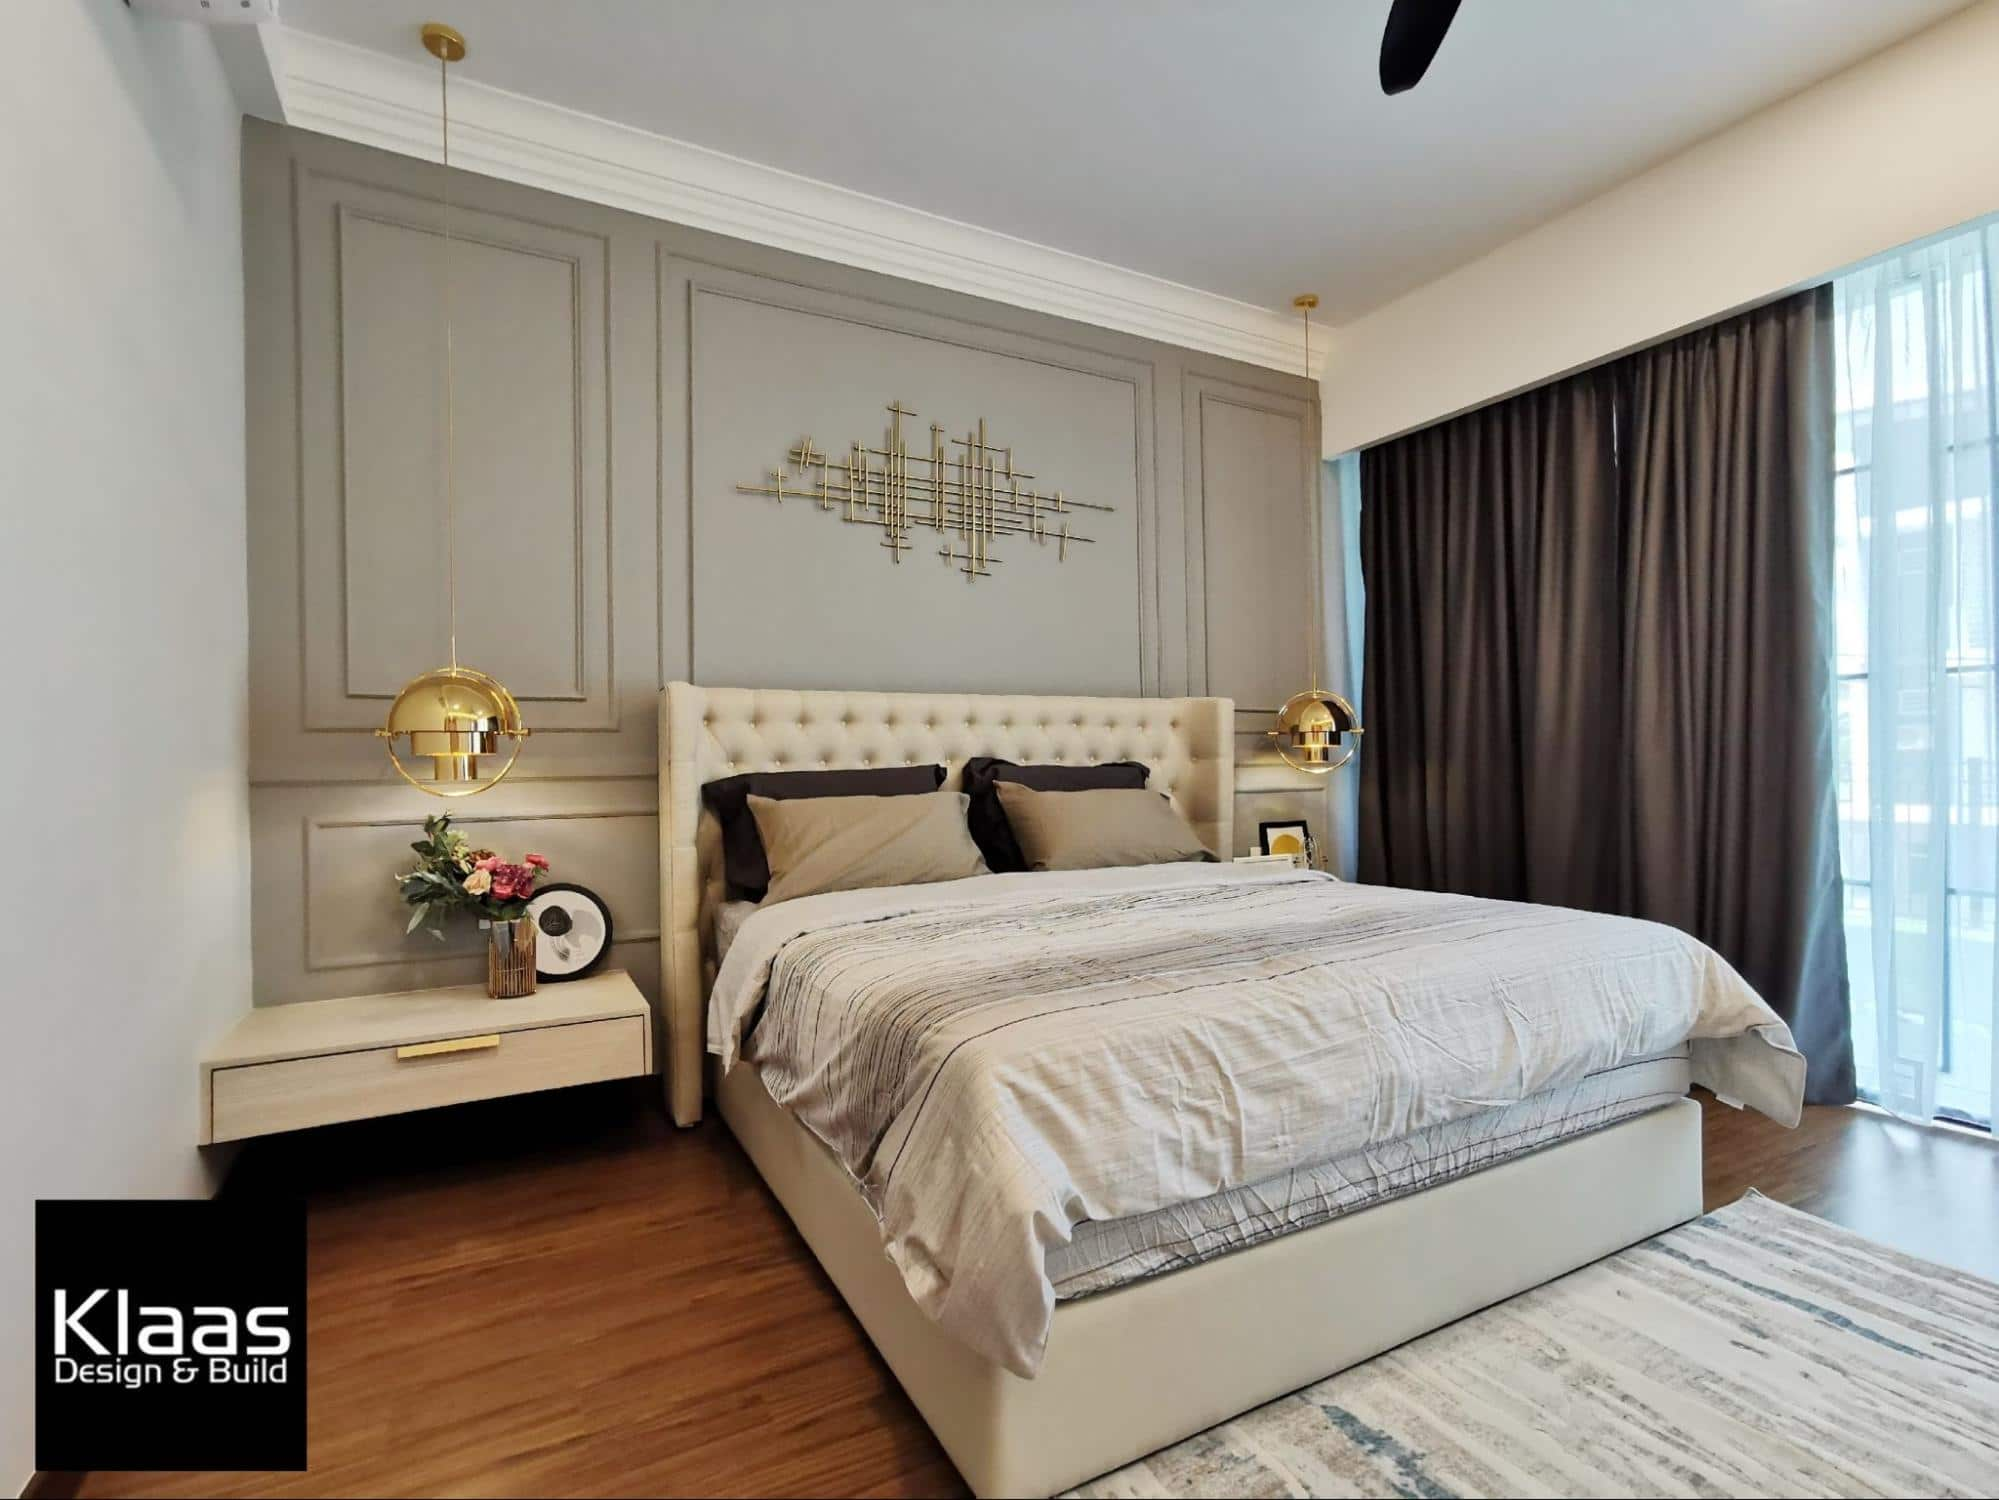 Modern classical bedroom bedhead feature wall